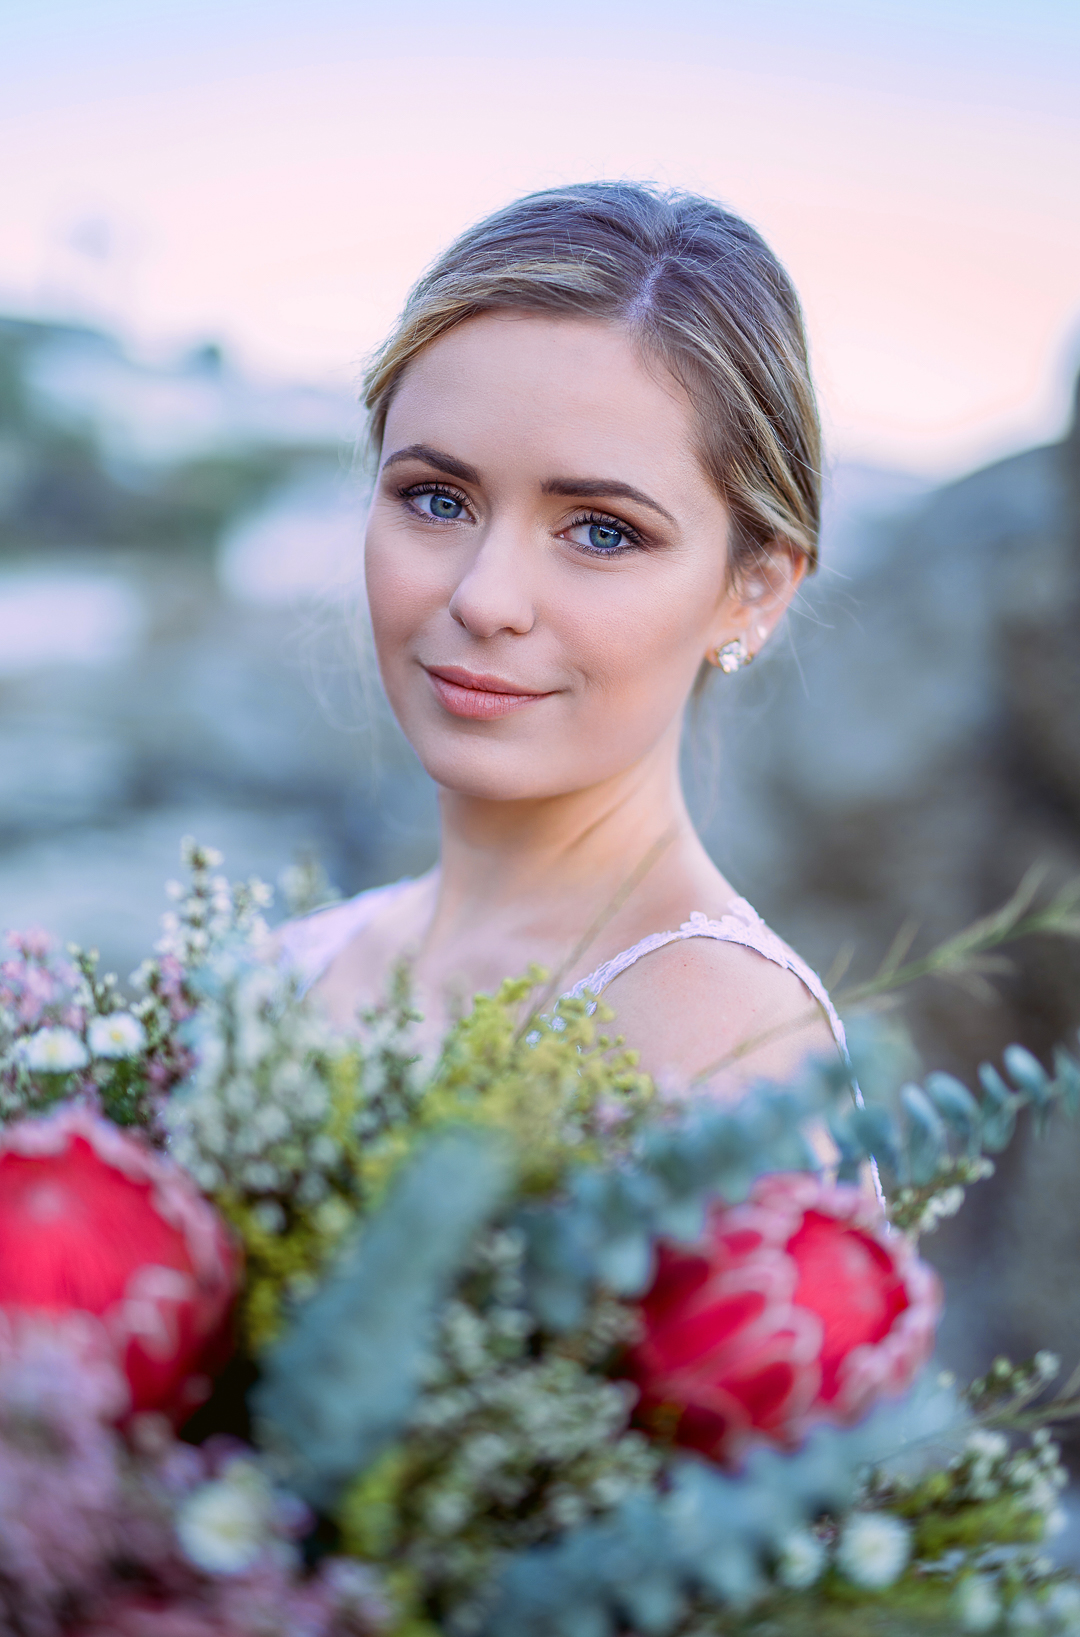 Elopement Photography Cape Town Clifton by Cape Image Co. (small file)-38.jpg